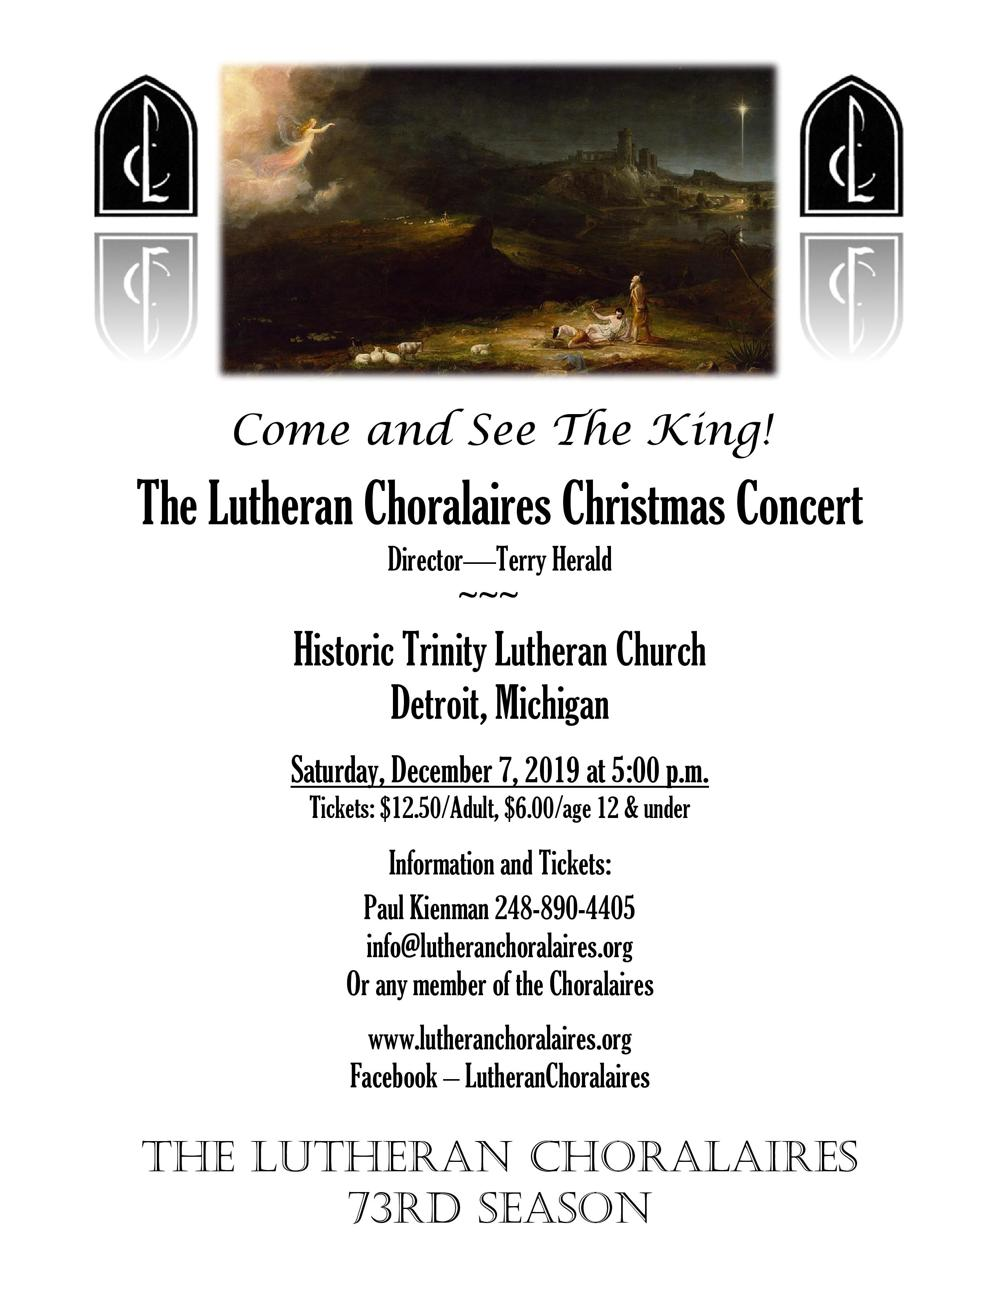 Lutheran Choralaires Christmas 2019 Flyer